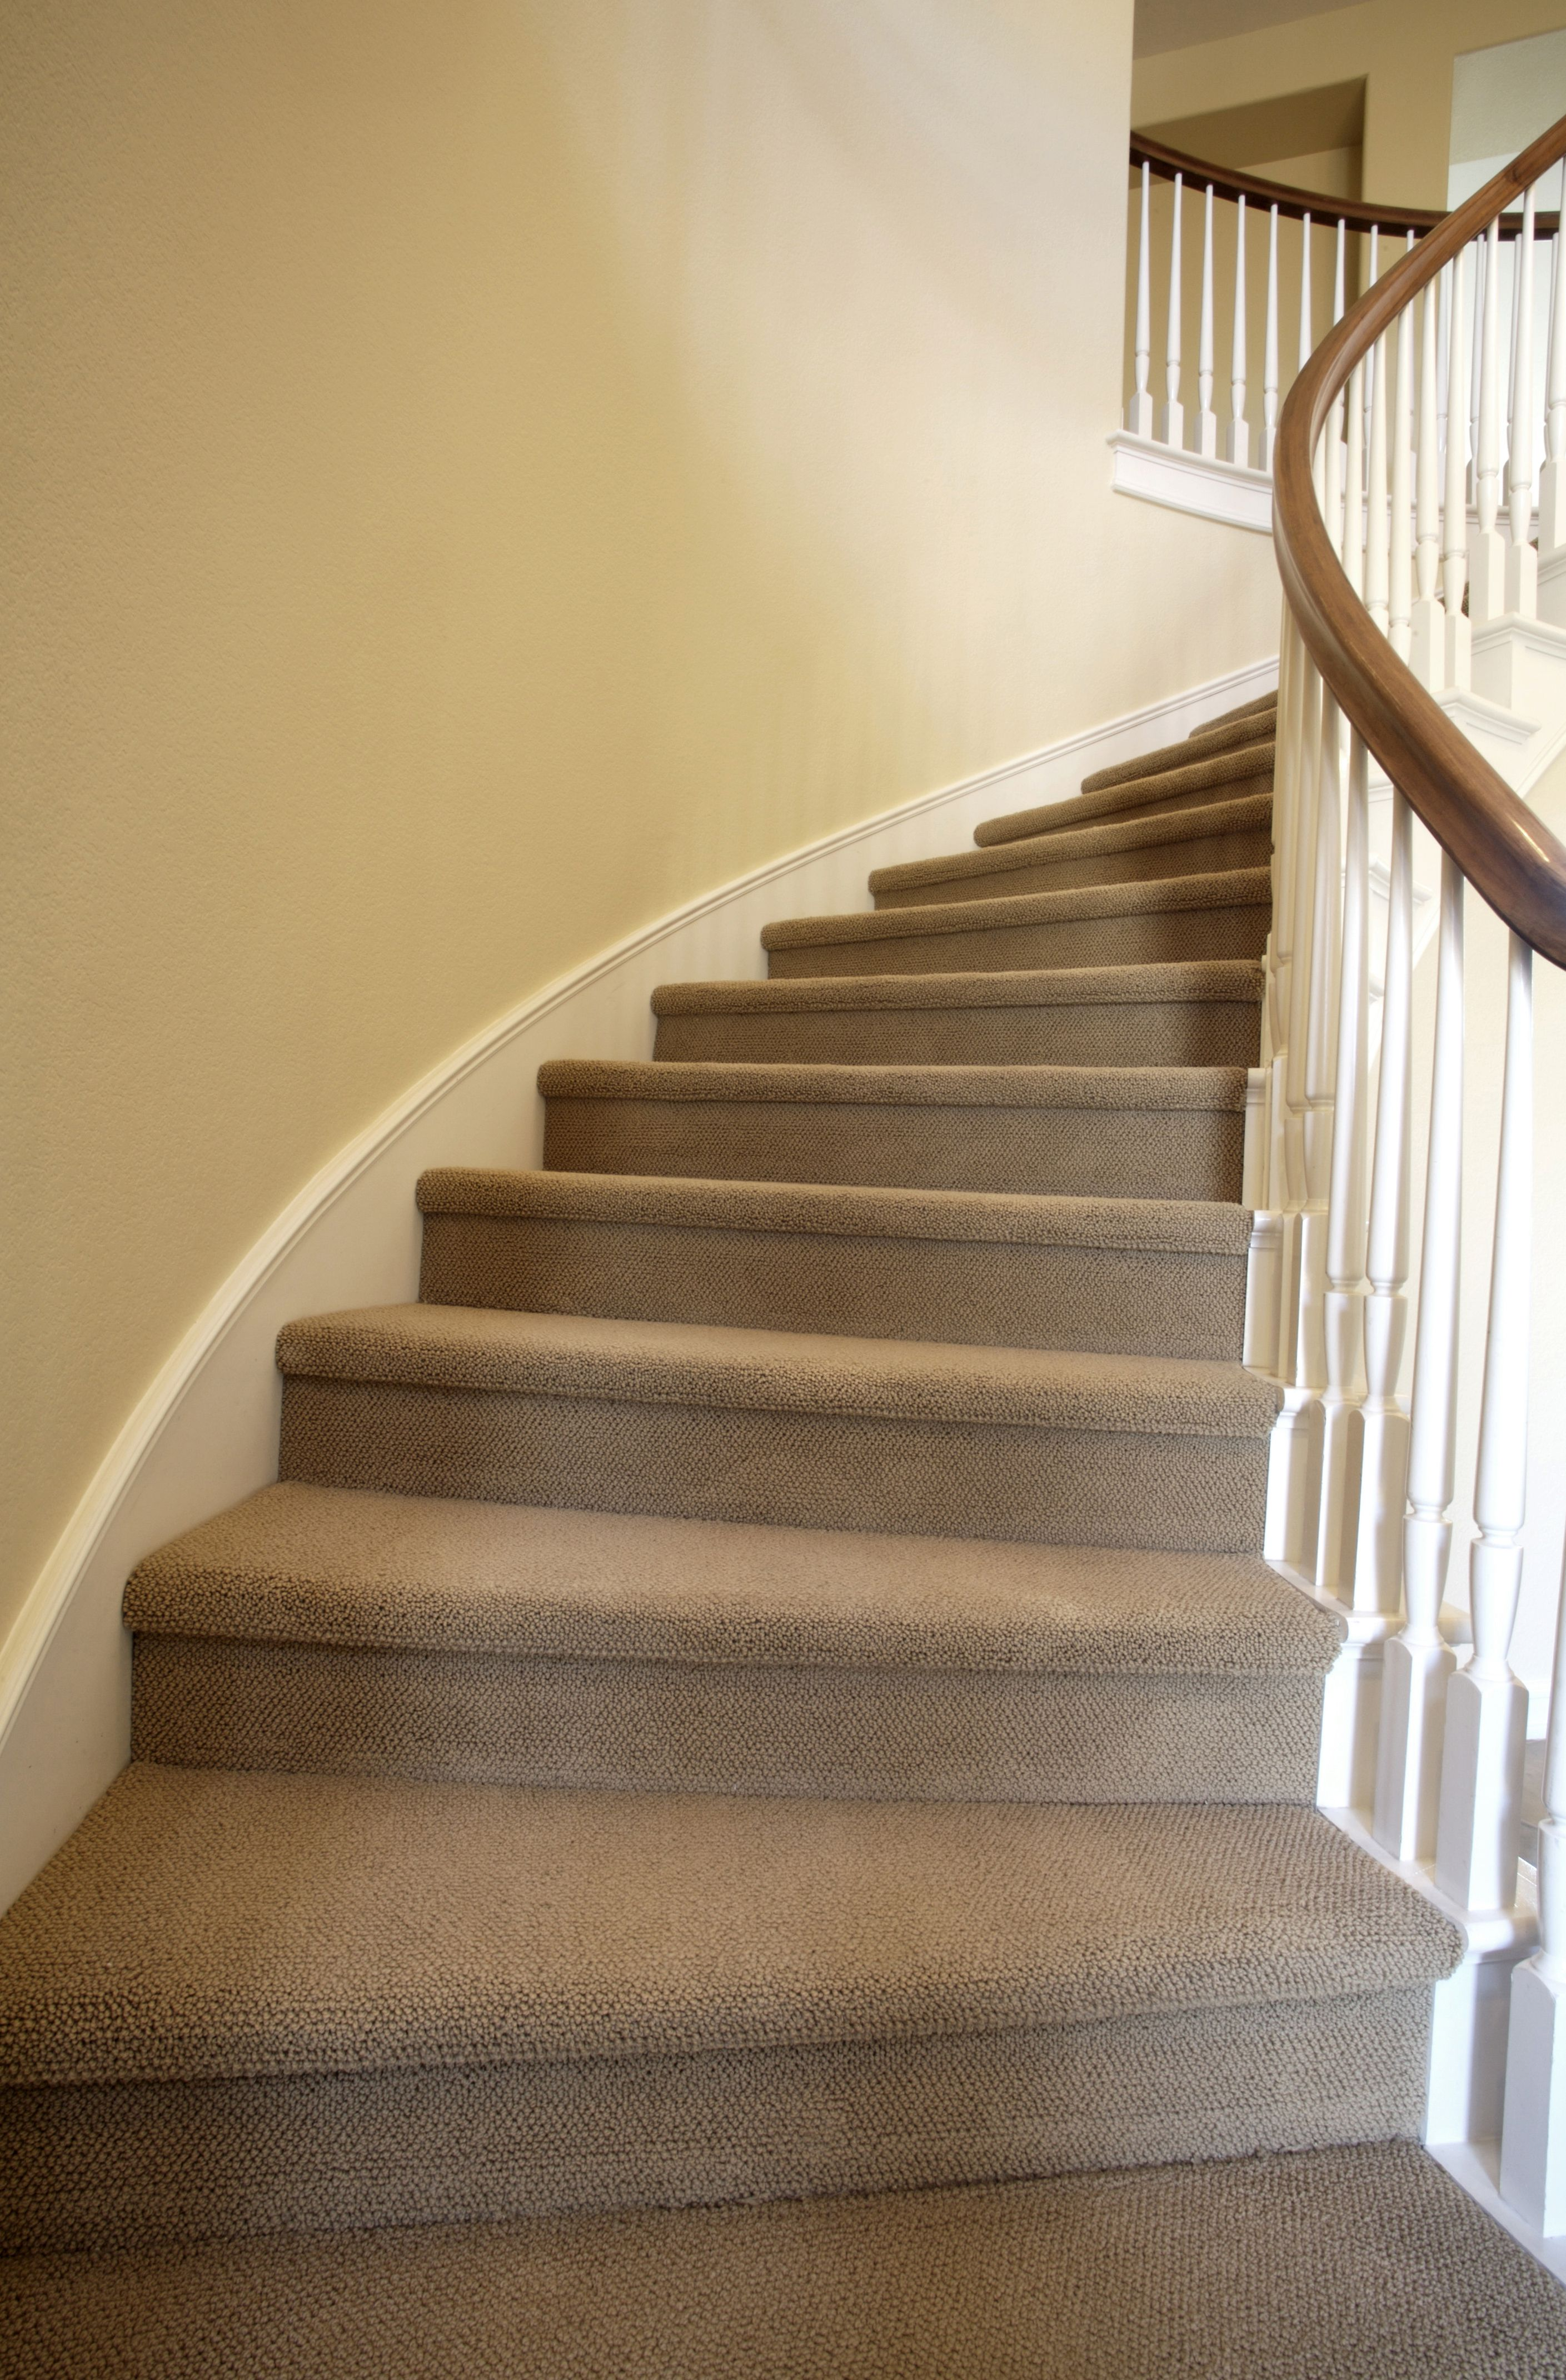 Best carpet for stairs and landing - How Much Carpet Do You Need For Your Stairs